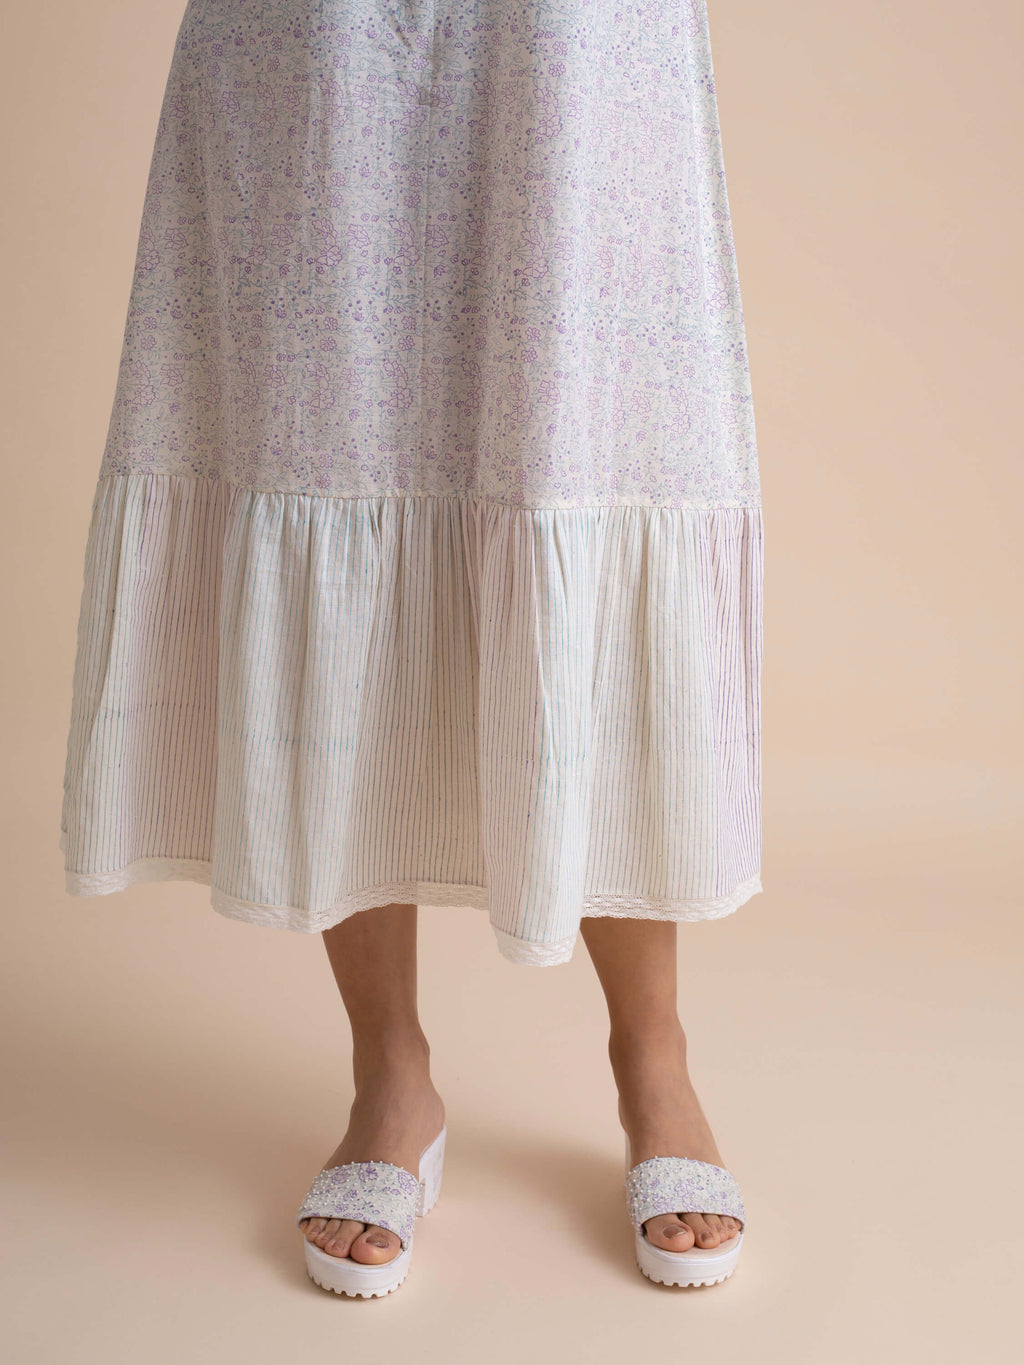 Herbage Shift Dress - BunaStudio